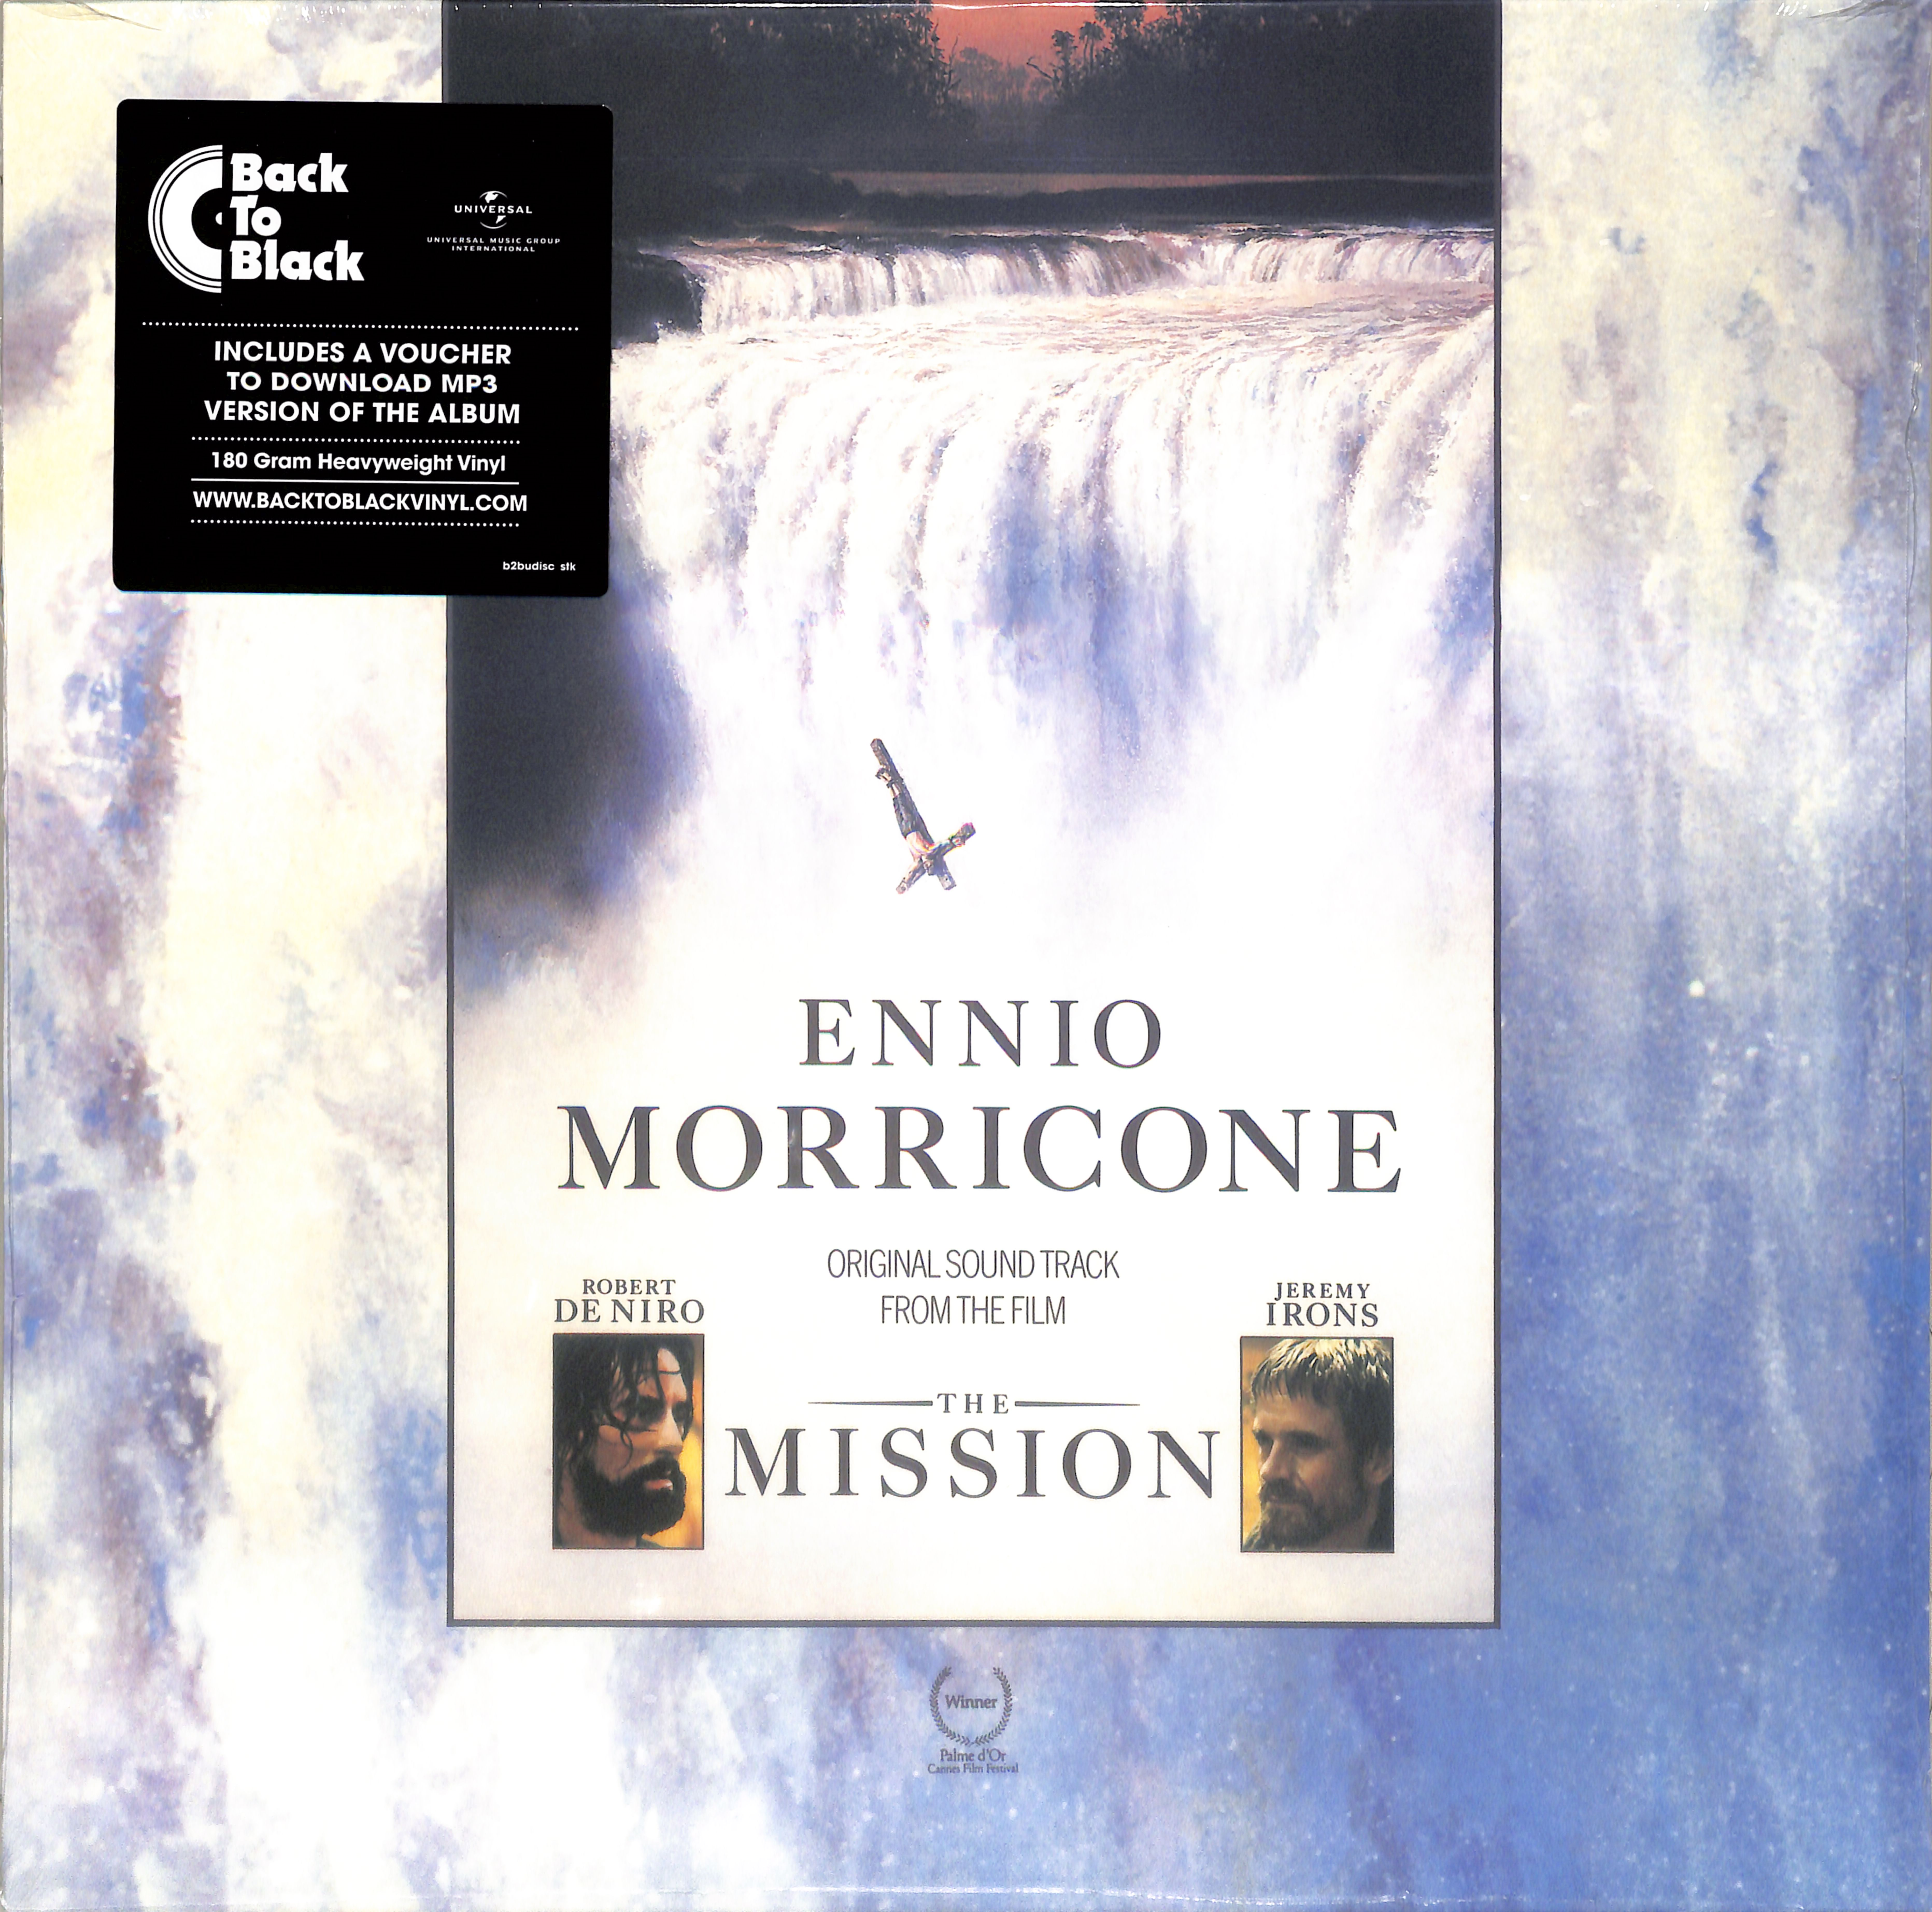 Ennio Morricone - THE MISSION O.S.T.